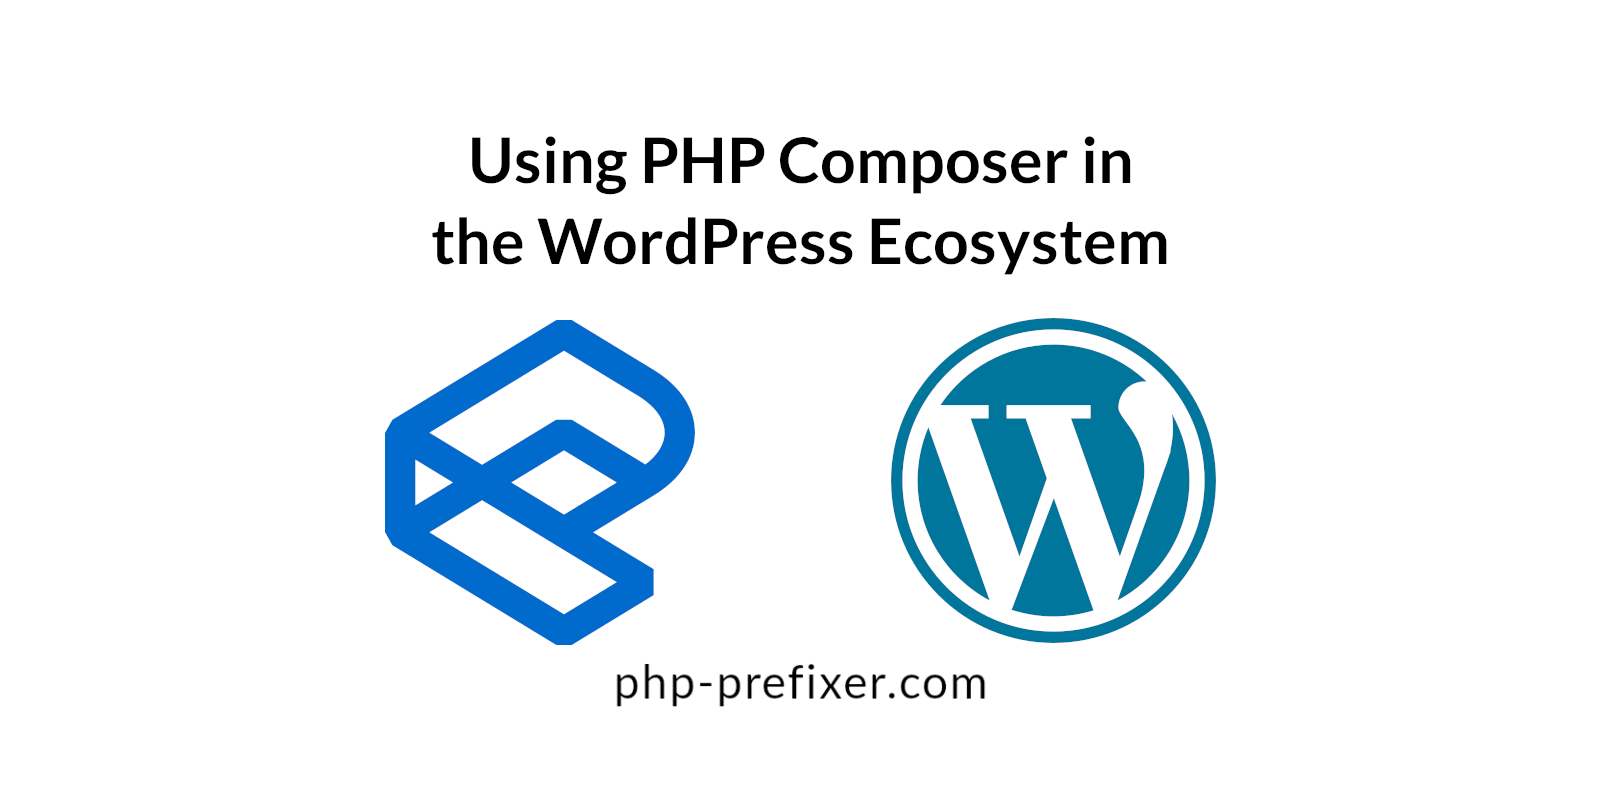 When building a WordPress website, developers like you build a plethora of themes and plugins. In doing so, you frequently copy-paste the same code ov